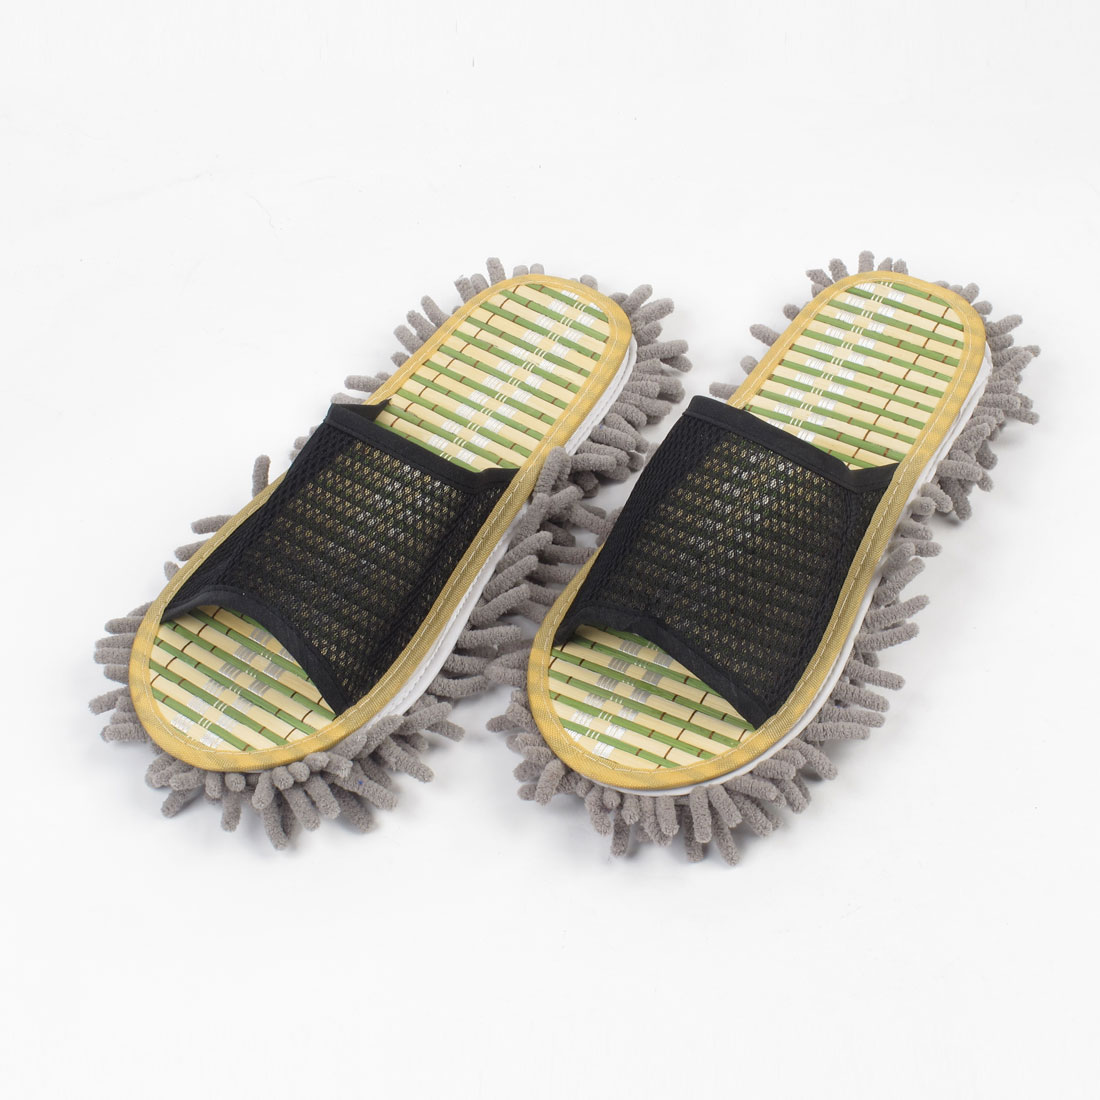 Home Dust Floor Bamboo Insole Cleaning Mop Slippers Shoes US 8.5 for Man